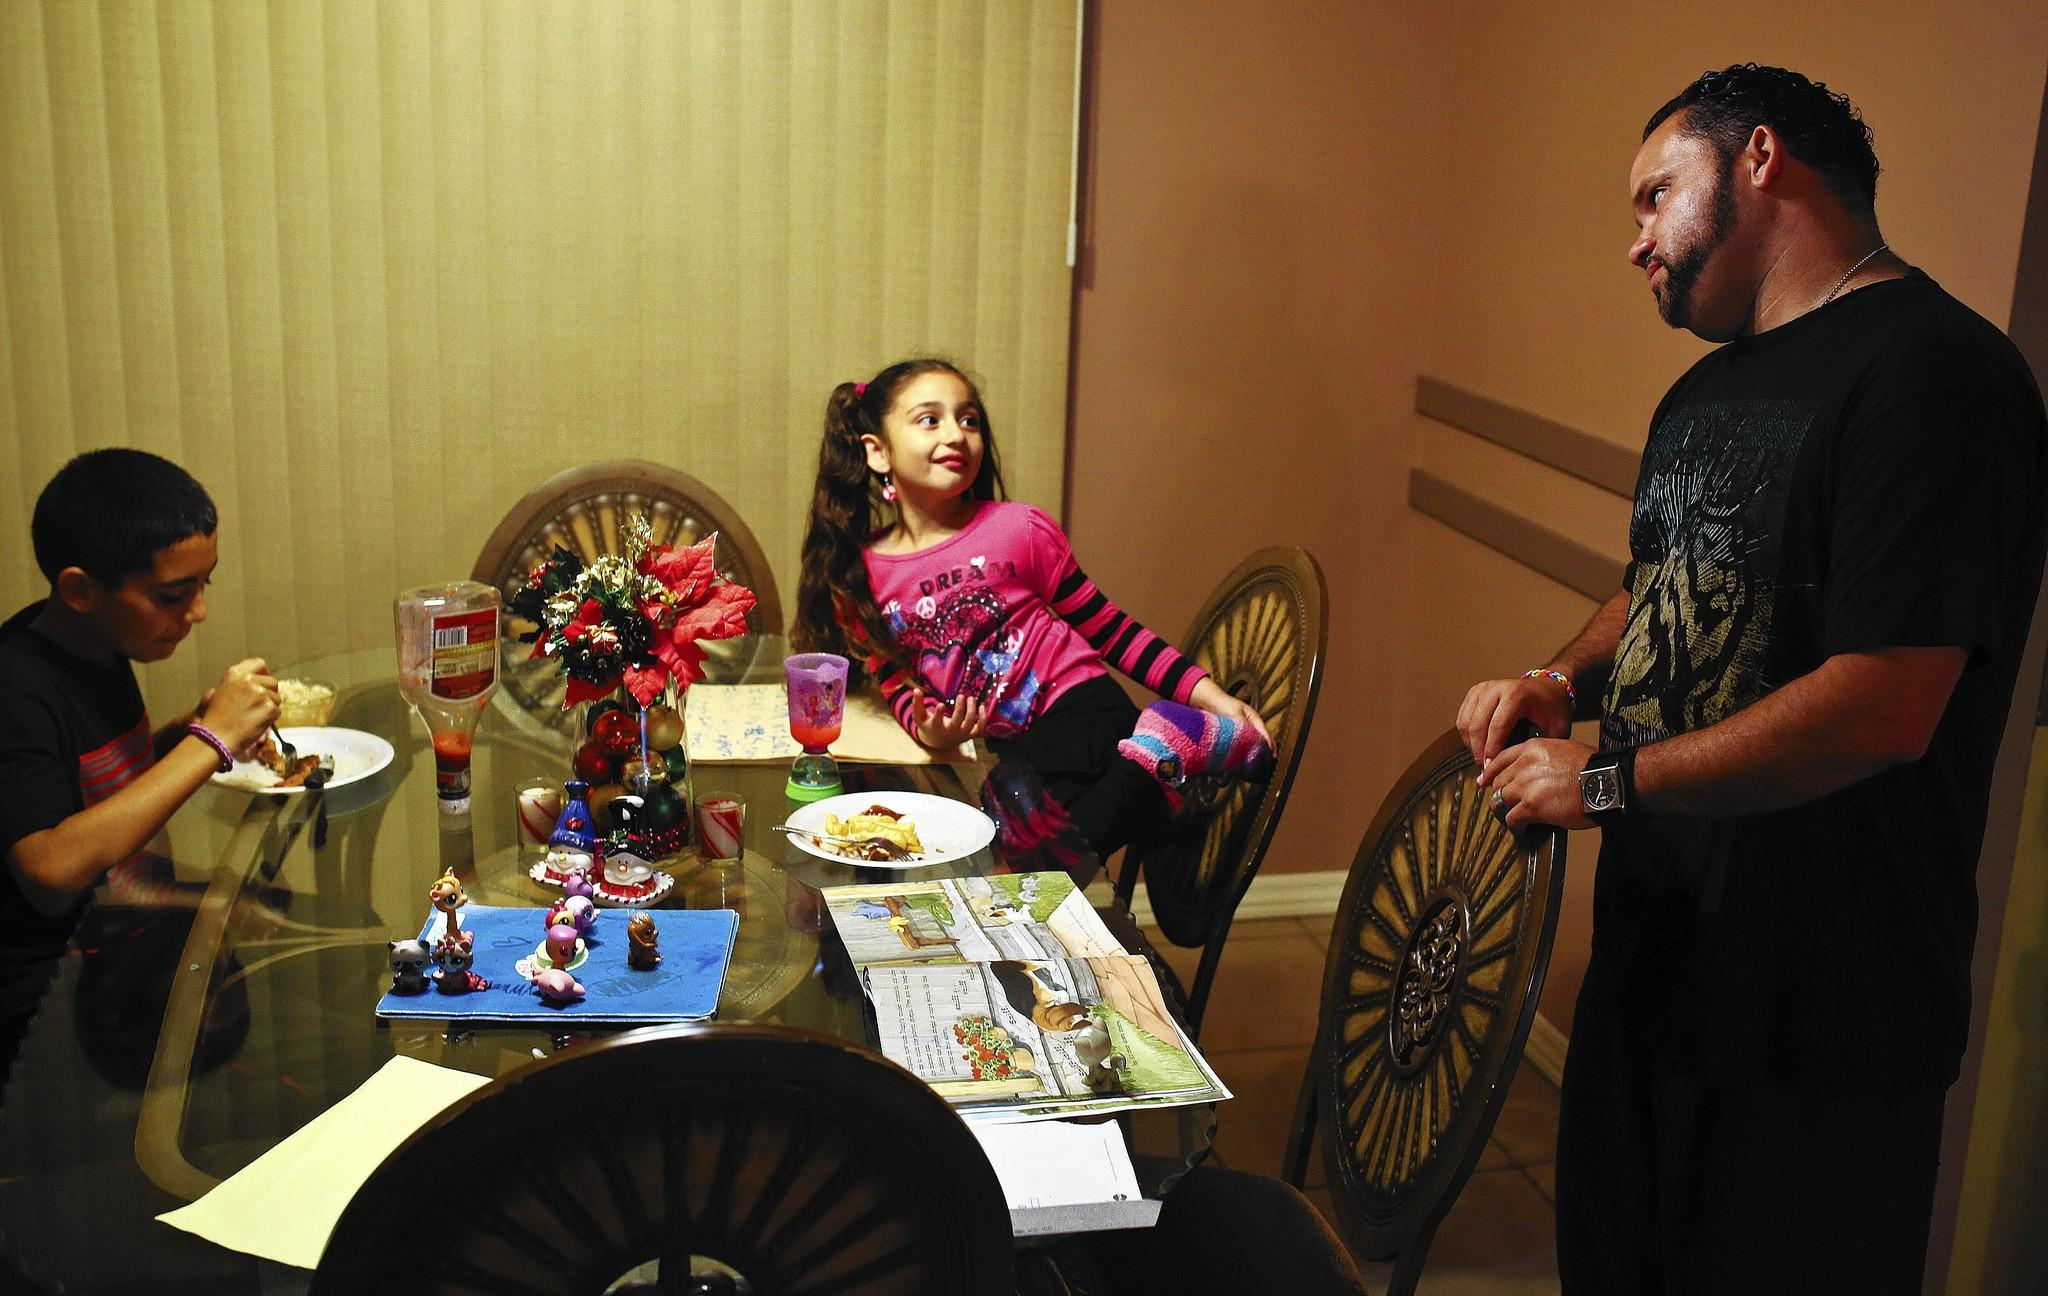 Jose Mendez spends time with his daughter Ariella Mendez and son Pablo DeLeon after cooking them dinner at their Deltona home on January 9, 2014. Mendez is a stay-at-home dad and Army Reservist who is raising up to five kids at any one time.